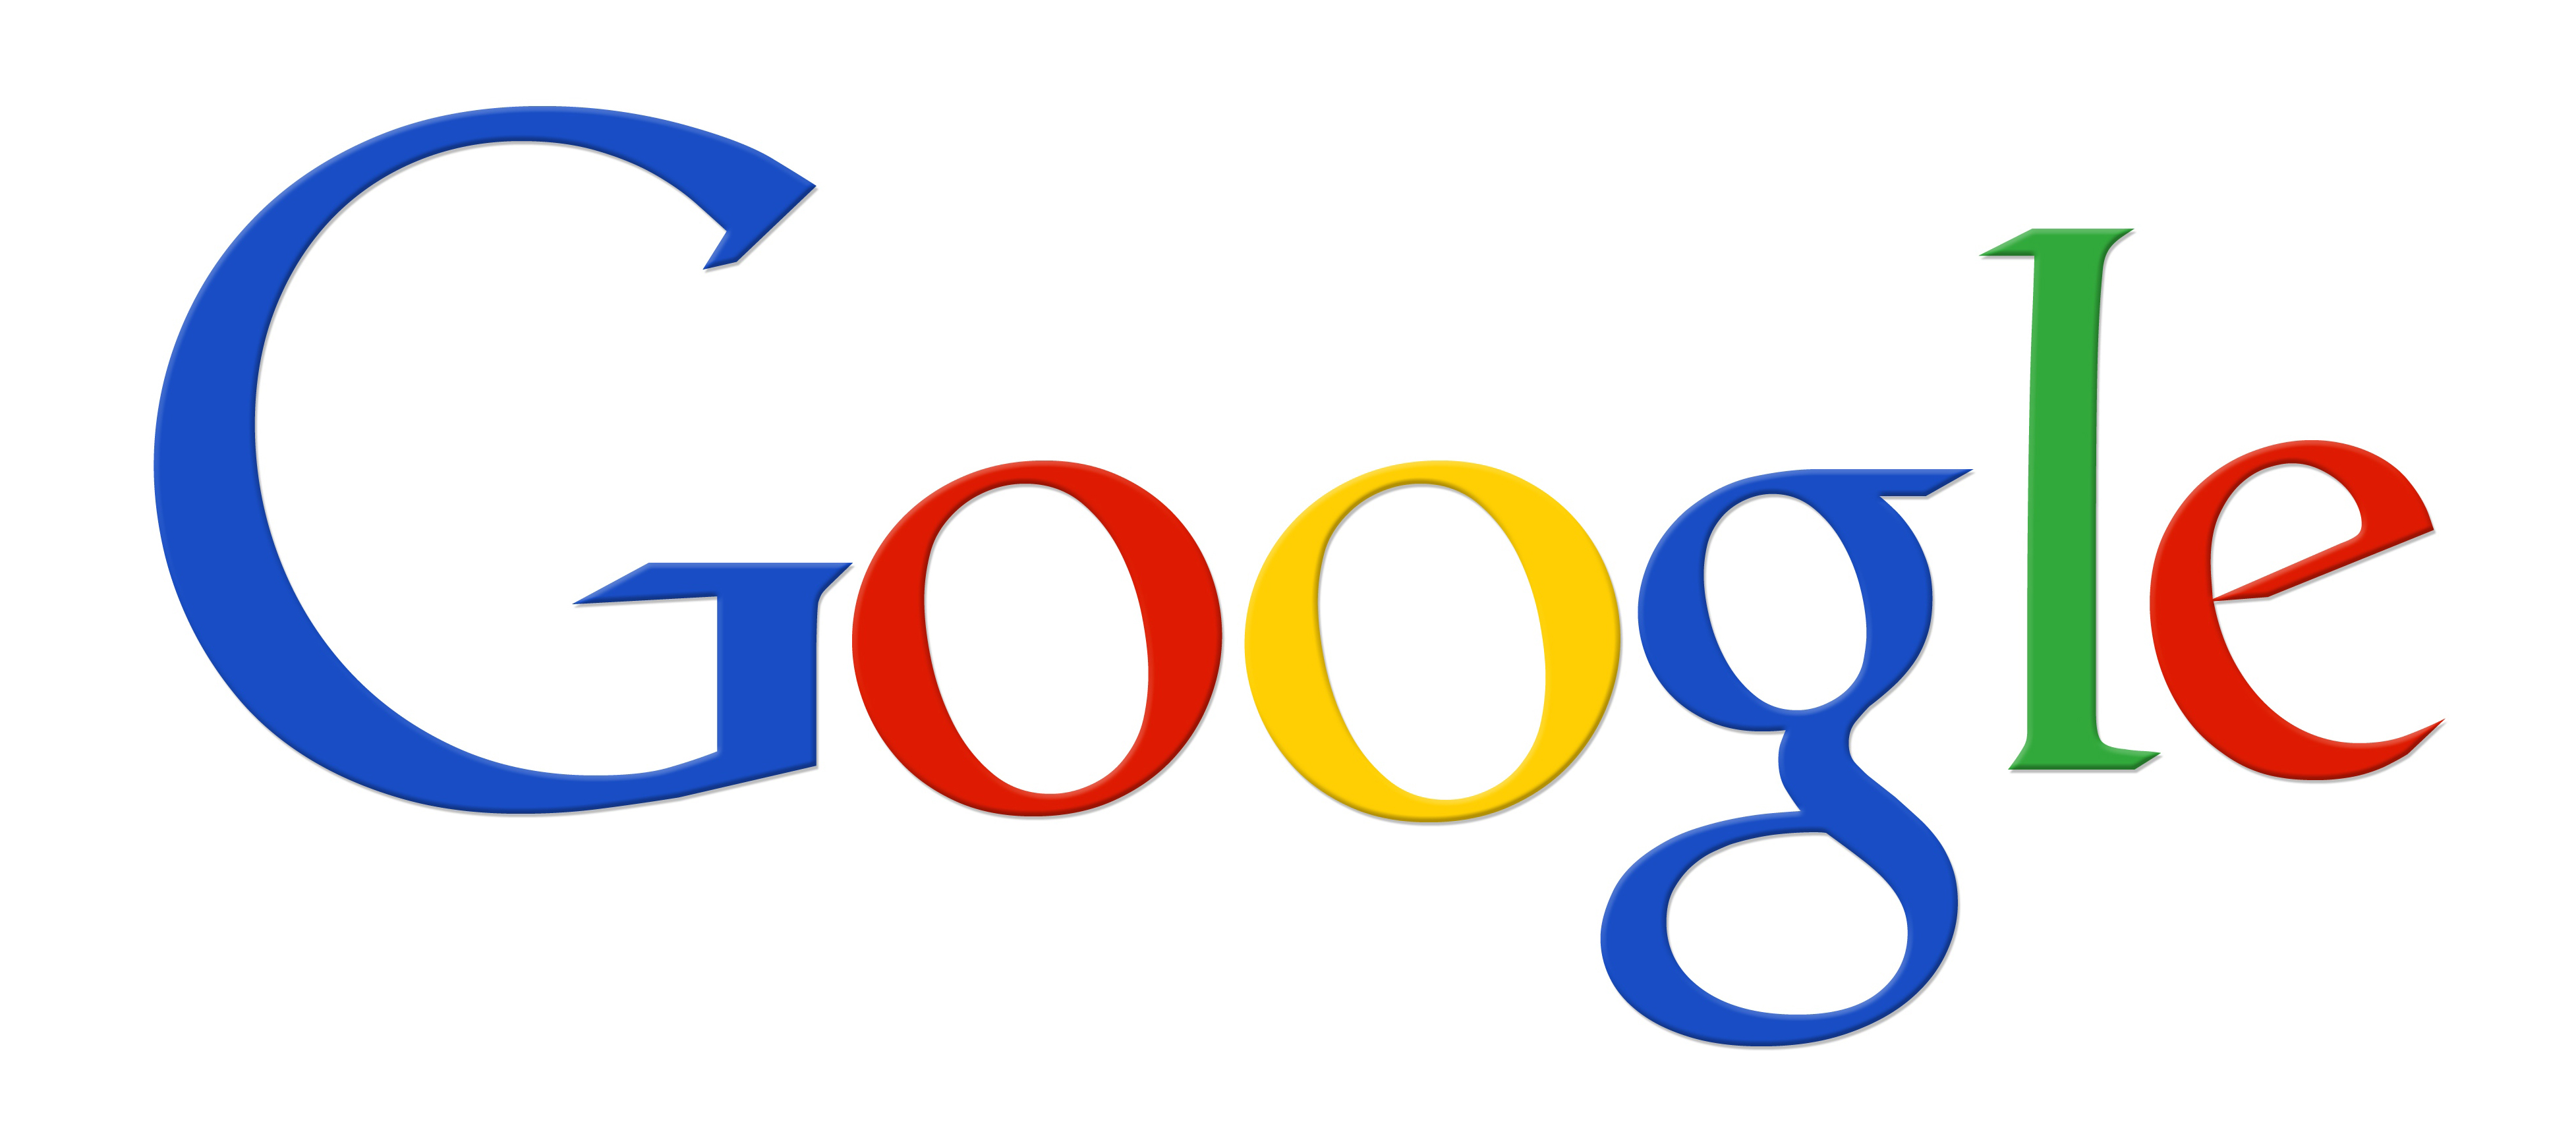 Google Working On Game Streaming Service; Controller ... - photo#1